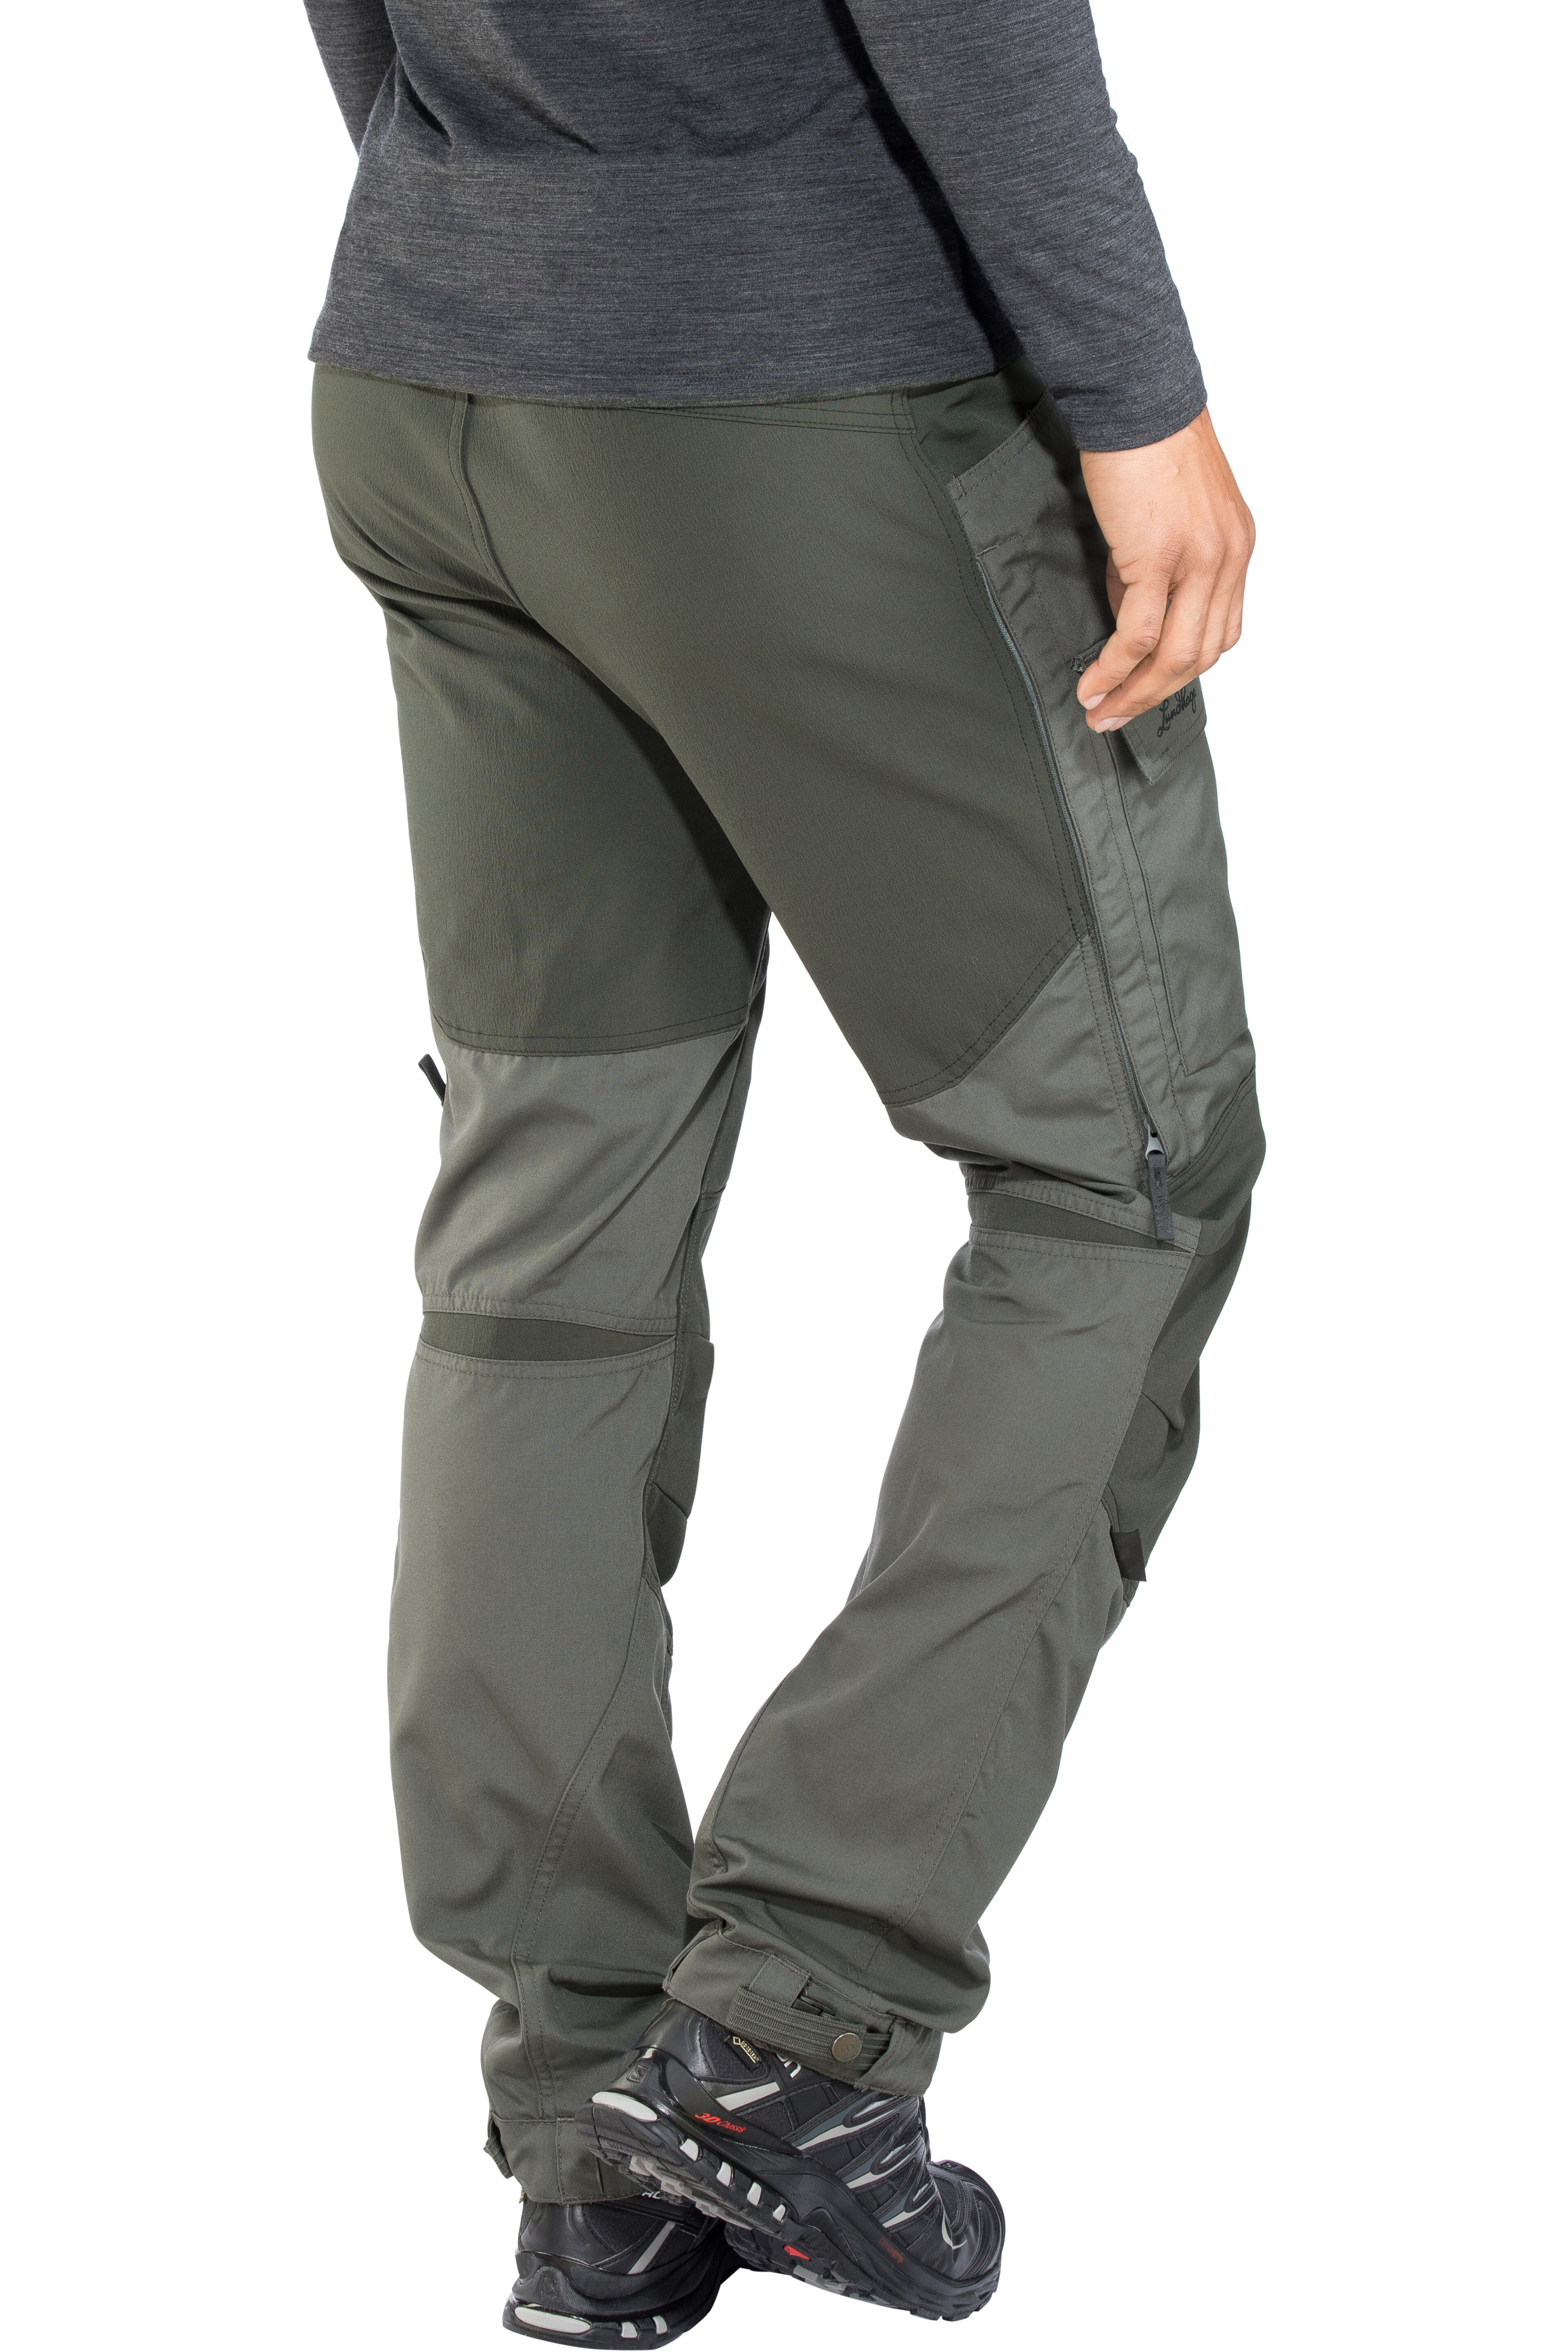 8669ec1c Lundhags Authentic II Pants Men granite/charcoal at Addnature.co.uk